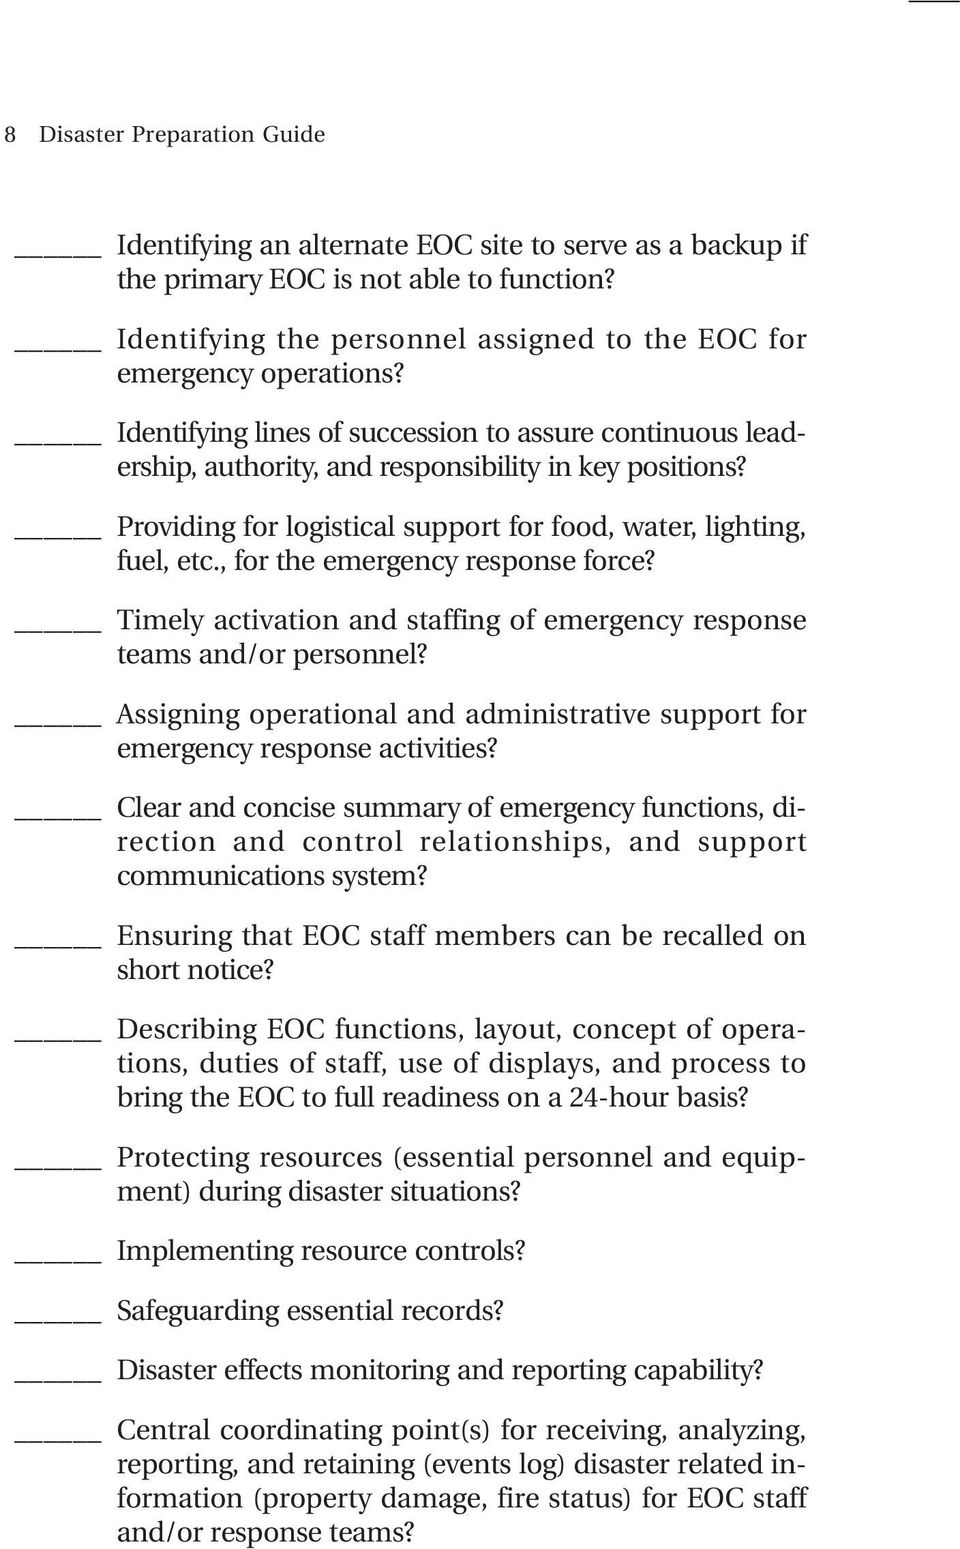 , for the emergency response force? Timely activation and staffing of emergency response teams and/or personnel? Assigning operational and administrative support for emergency response activities?